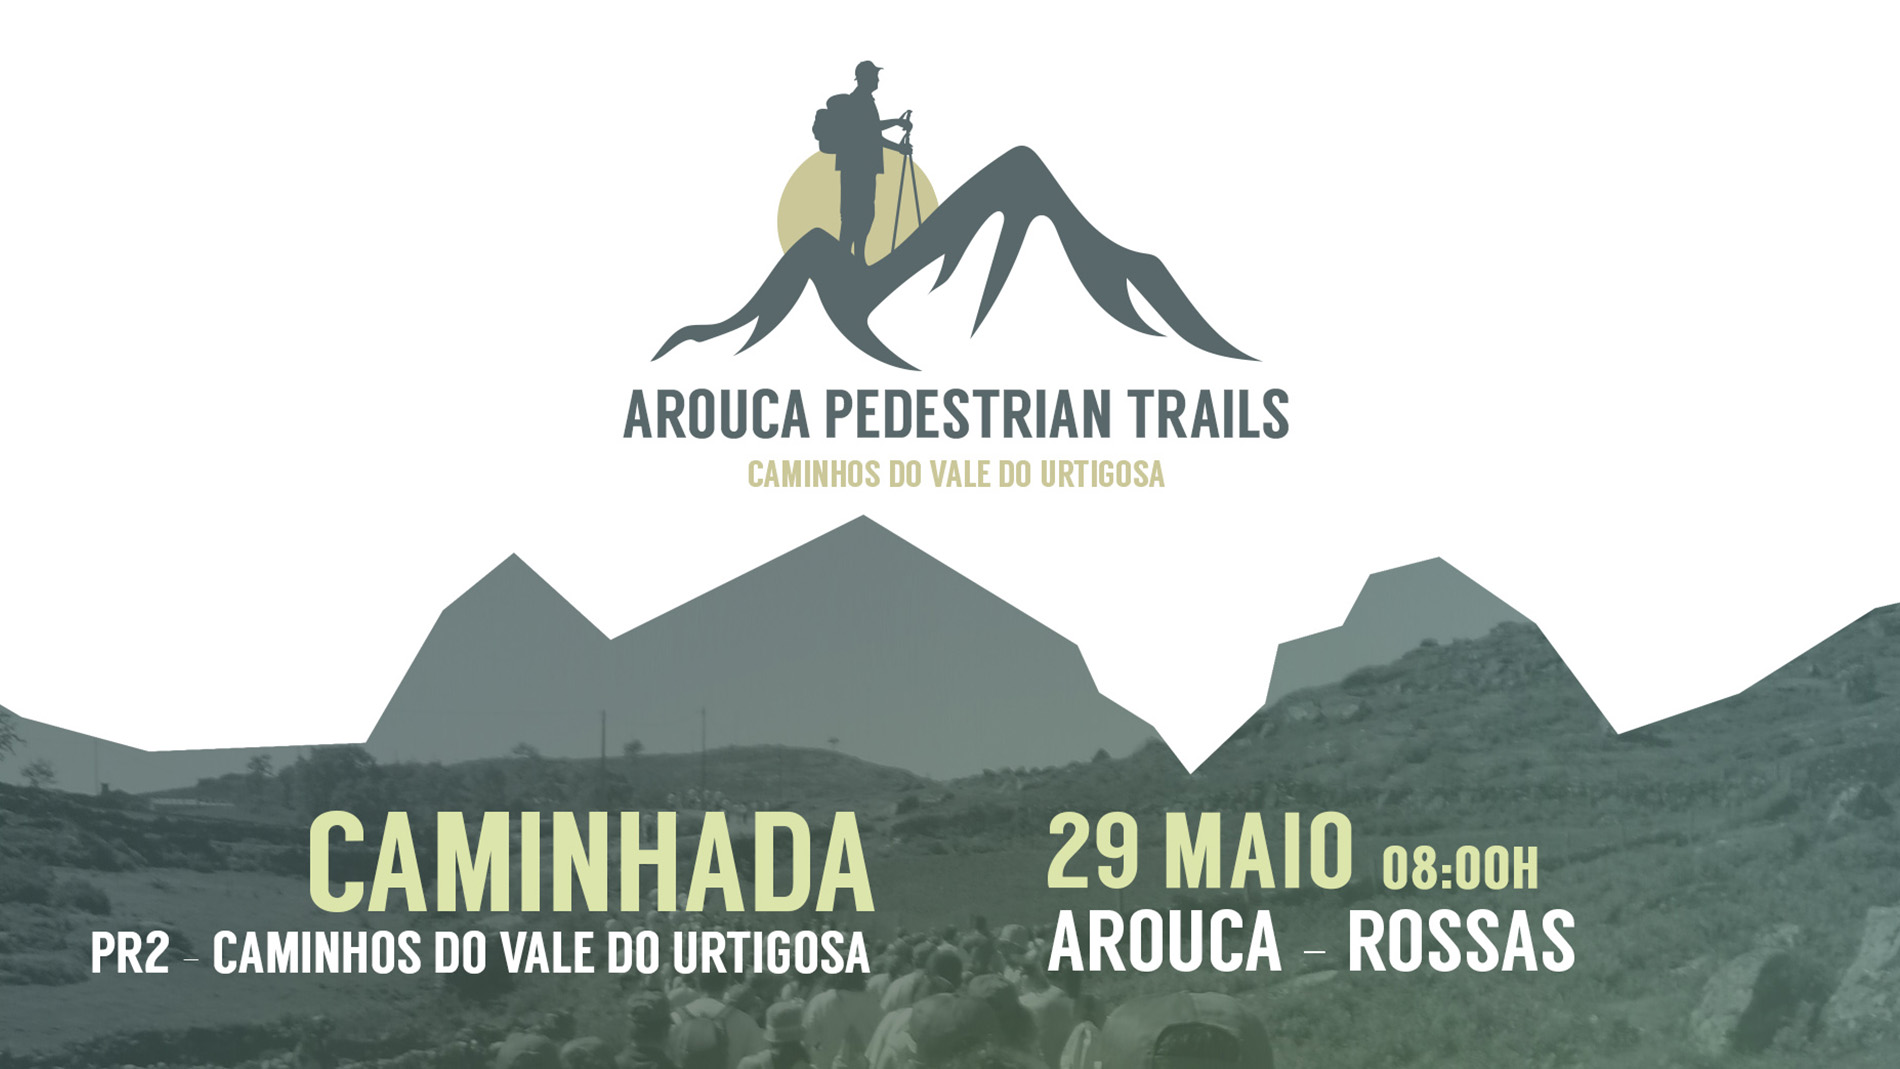 Arouca Pedestrian Trails V1.0